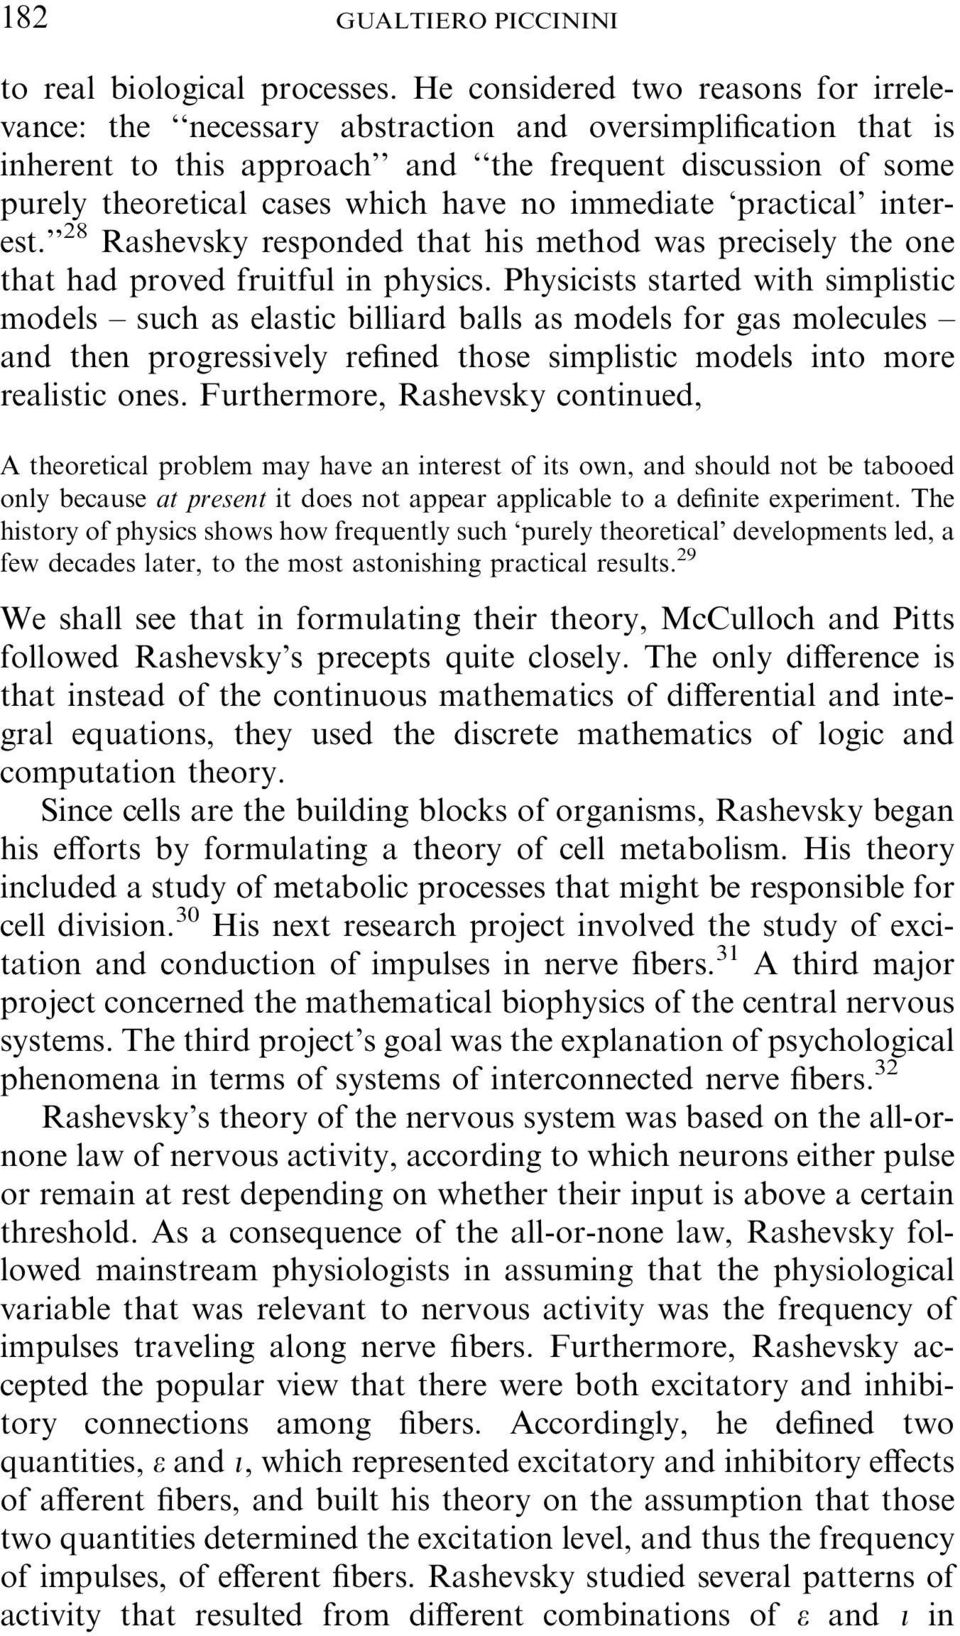 no immediate practical interest. 28 Rashevsky responded that his method was precisely the one that had proved fruitful in physics.